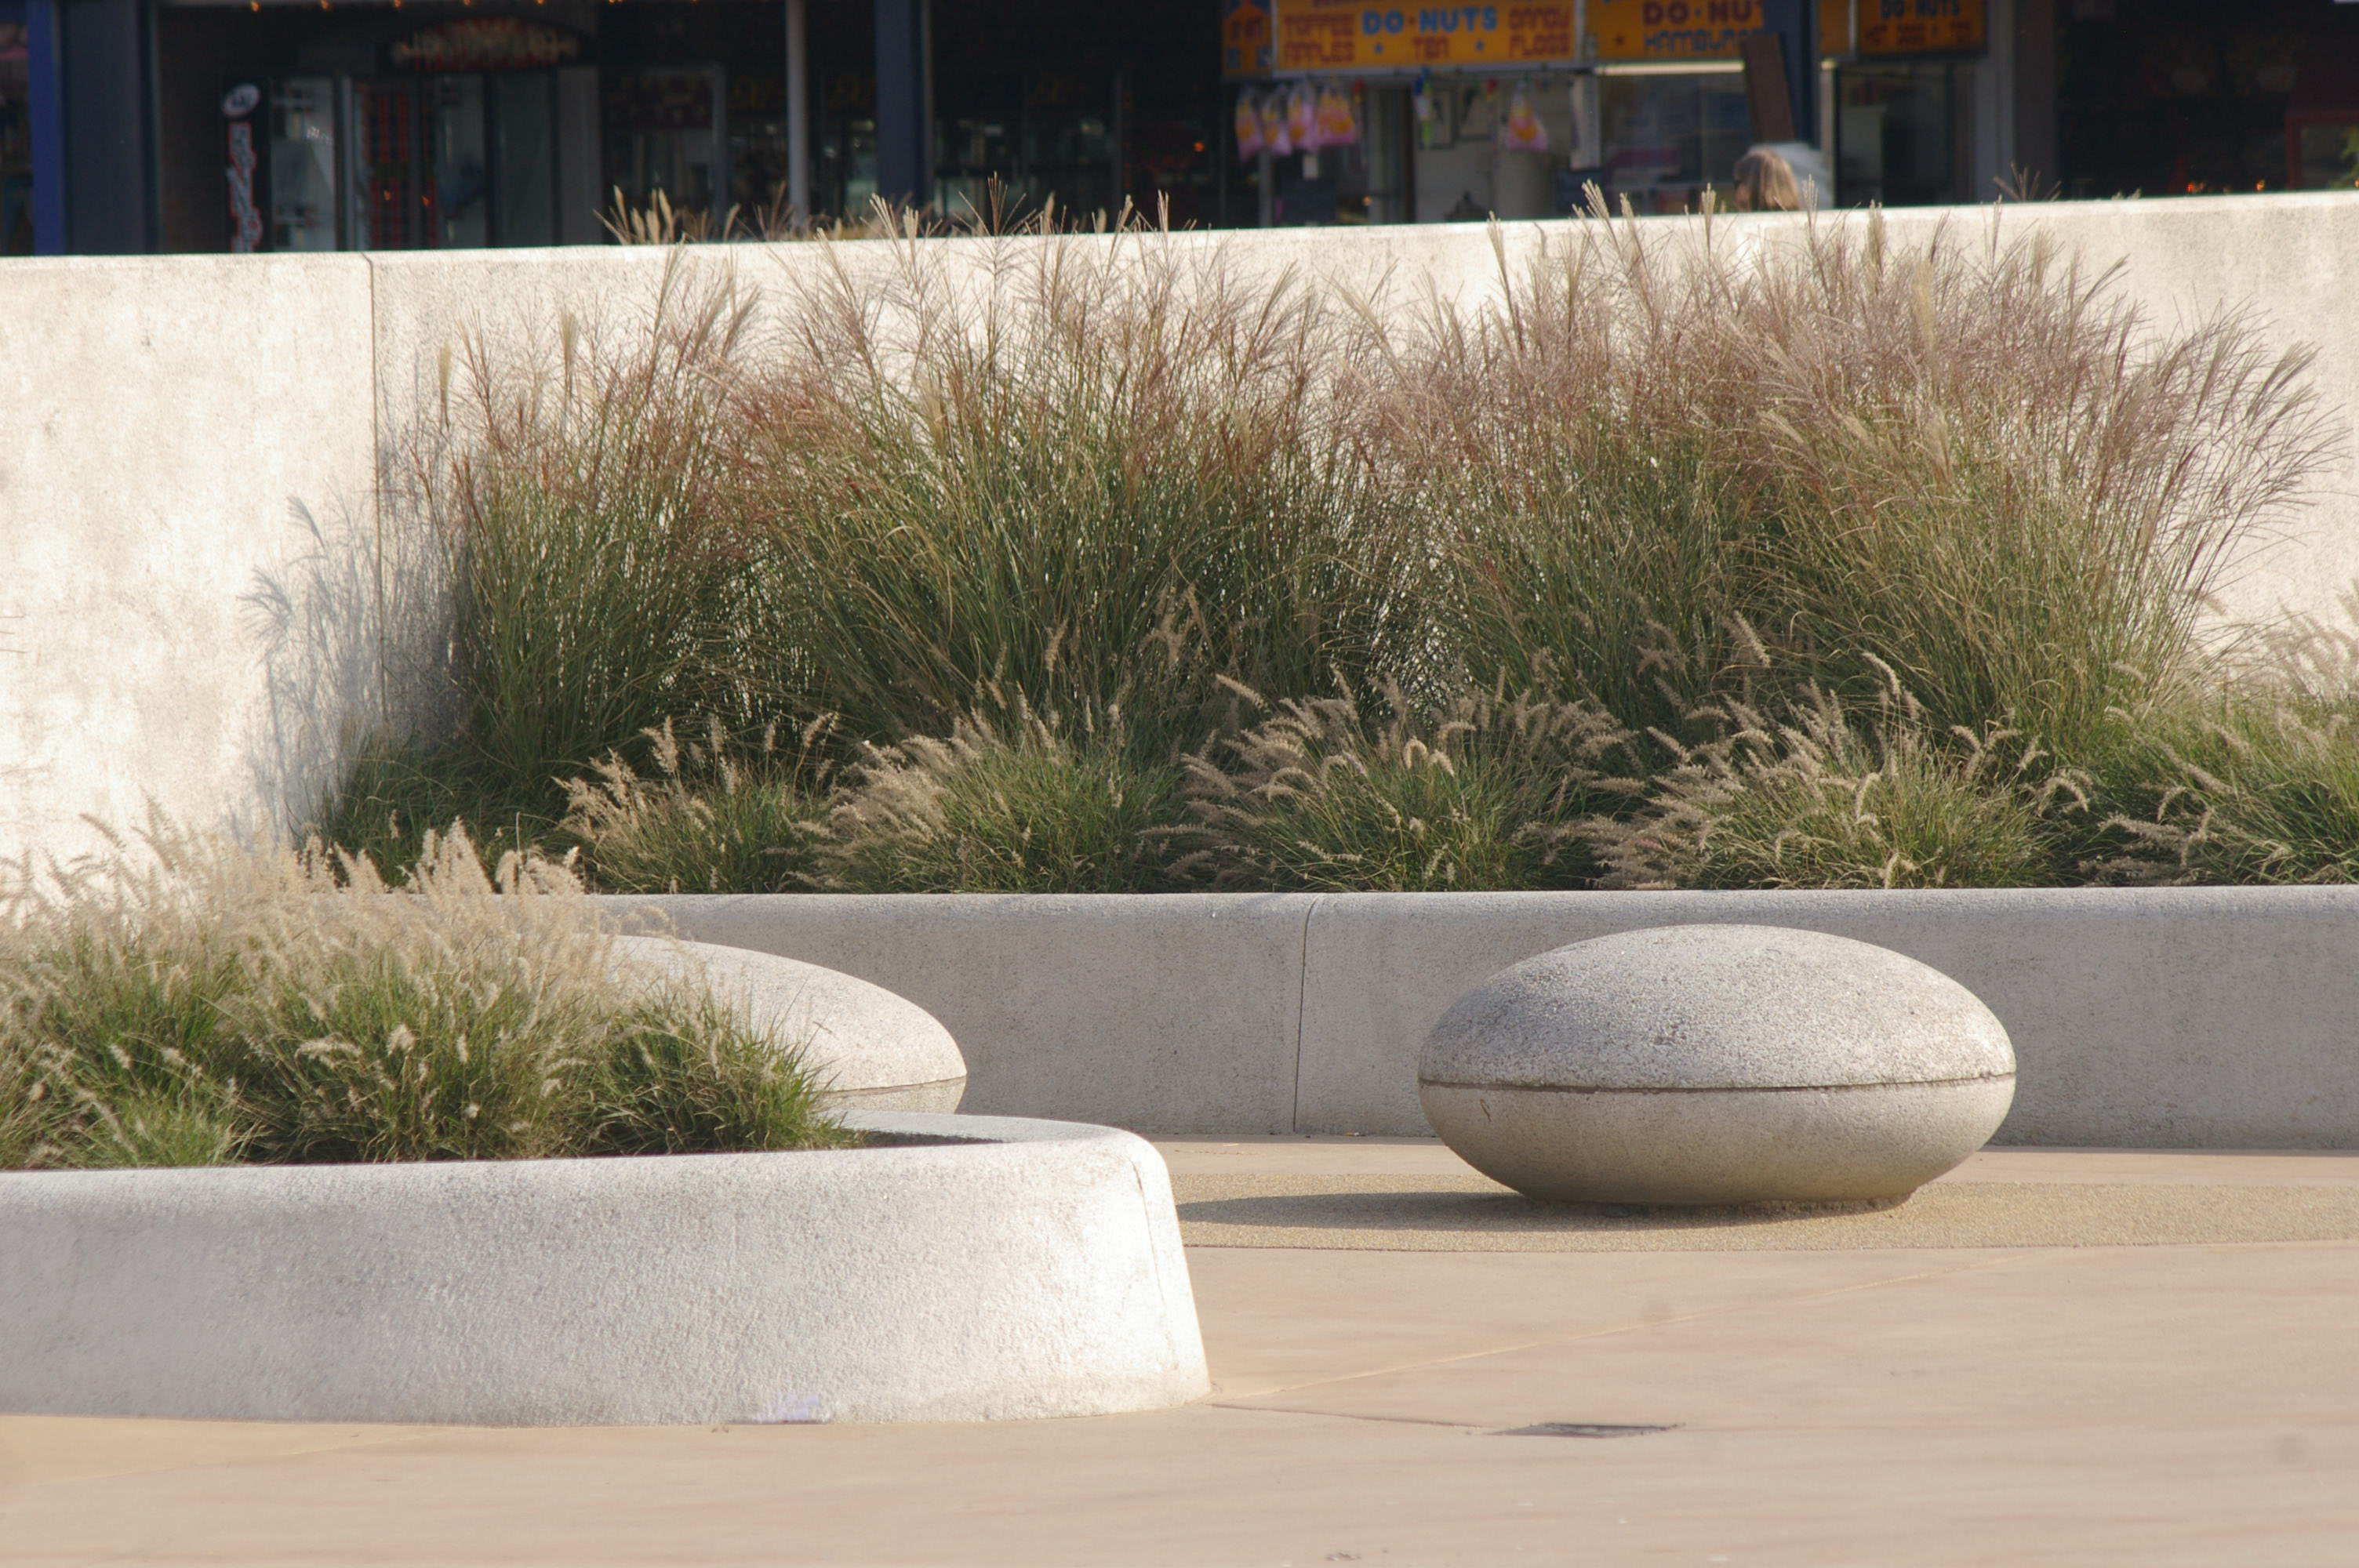 Drift Park Photo 6 - Grasses and Seats (BCAL)